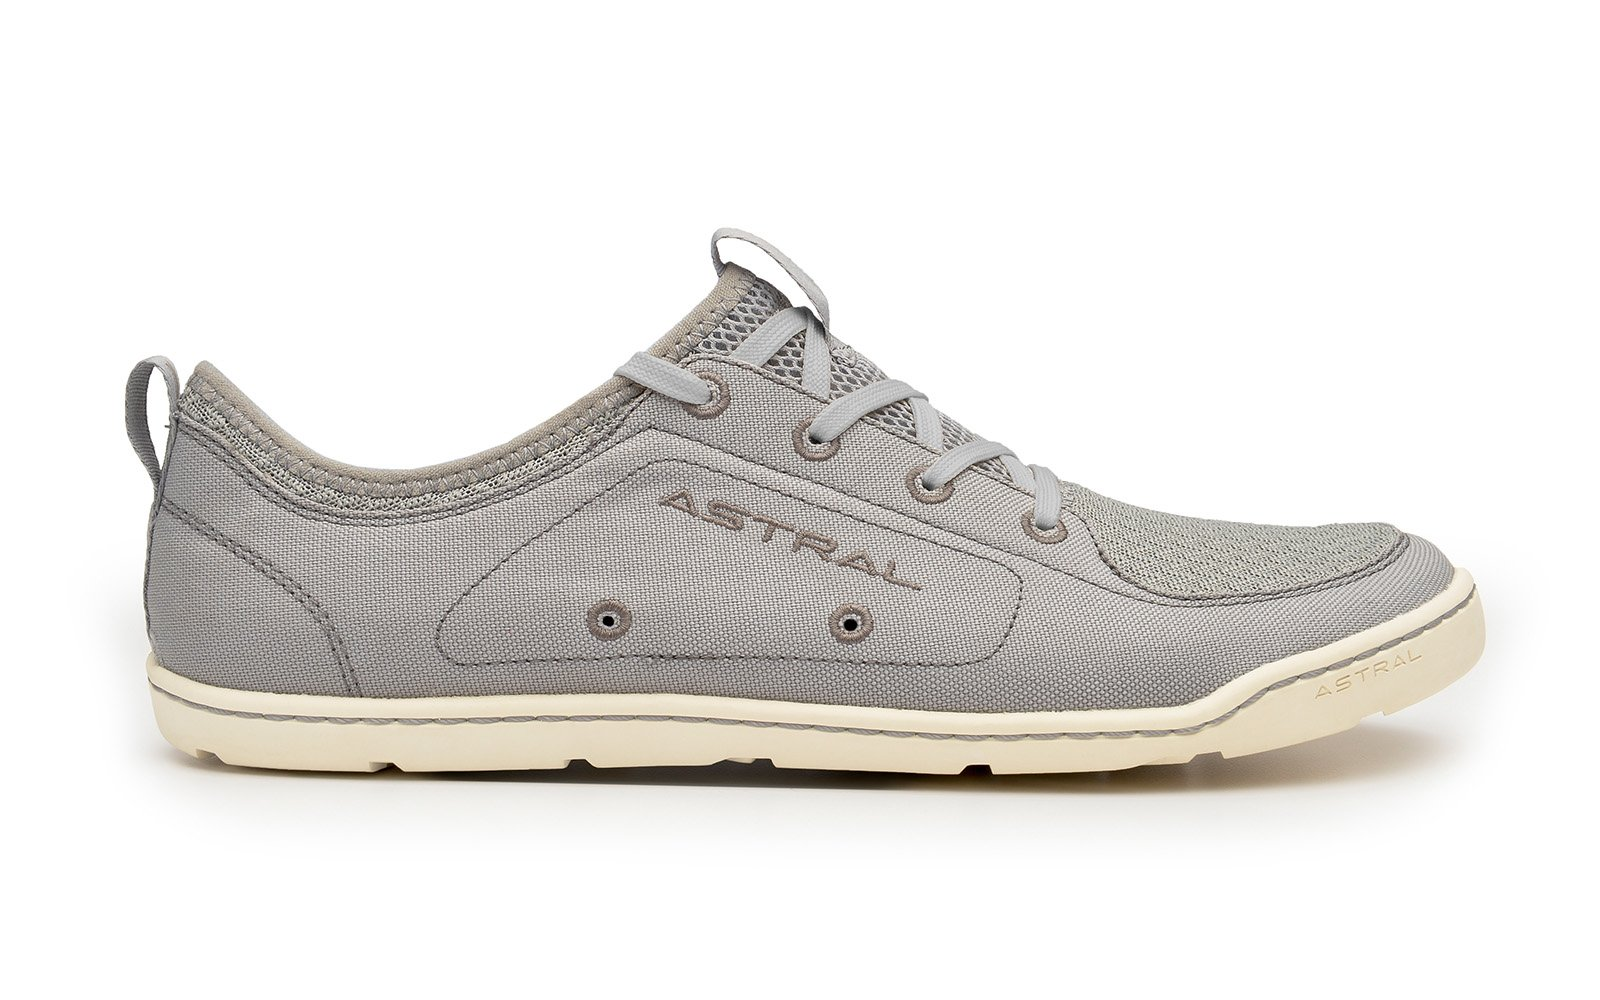 Astral Loyak Women's Water Shoes in Gray/White